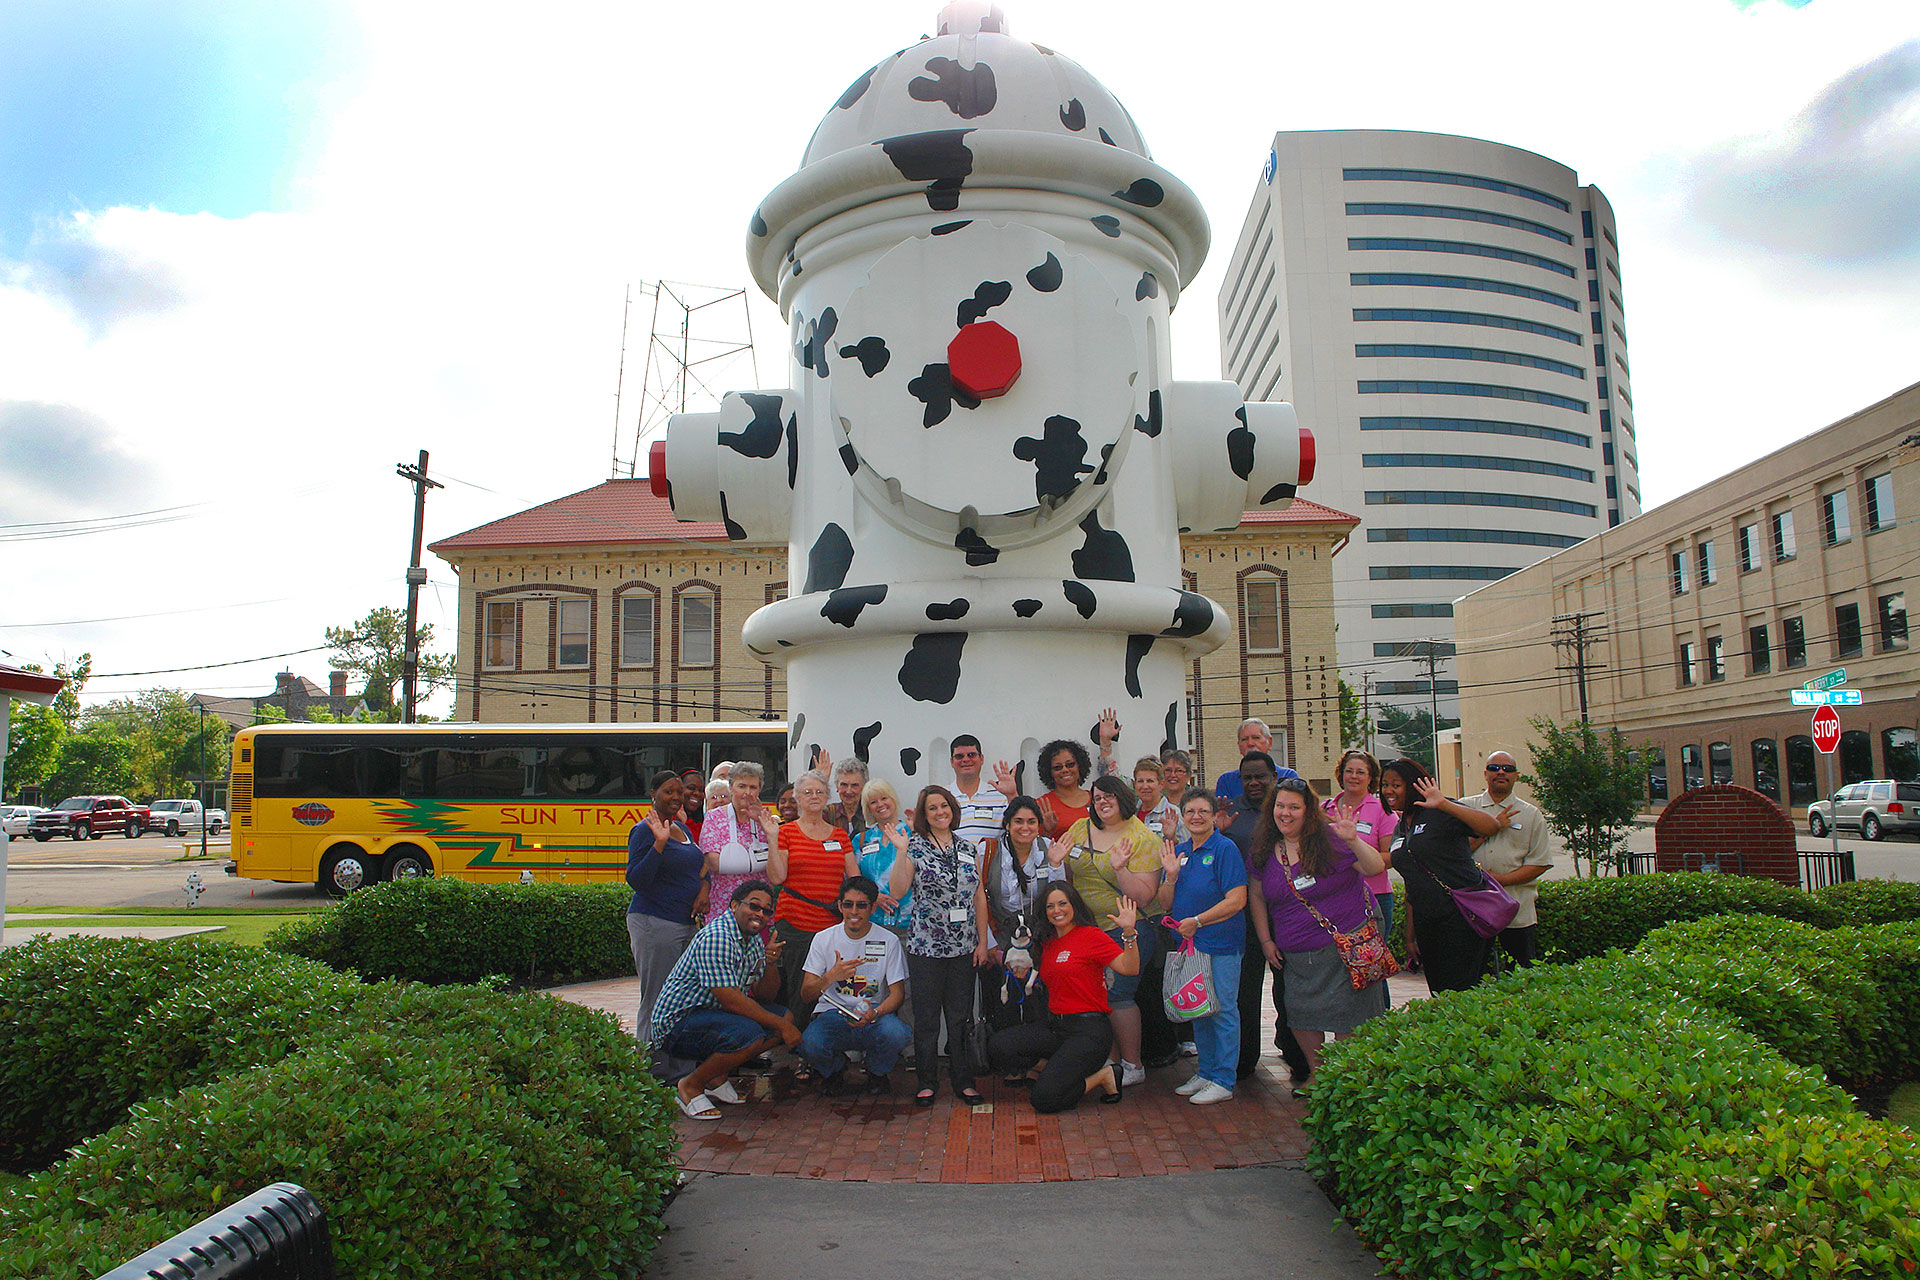 Giant Fire Hydrant in Beaumont, Texas; Courtesy of Beaumont Convent and Visitors Bureau